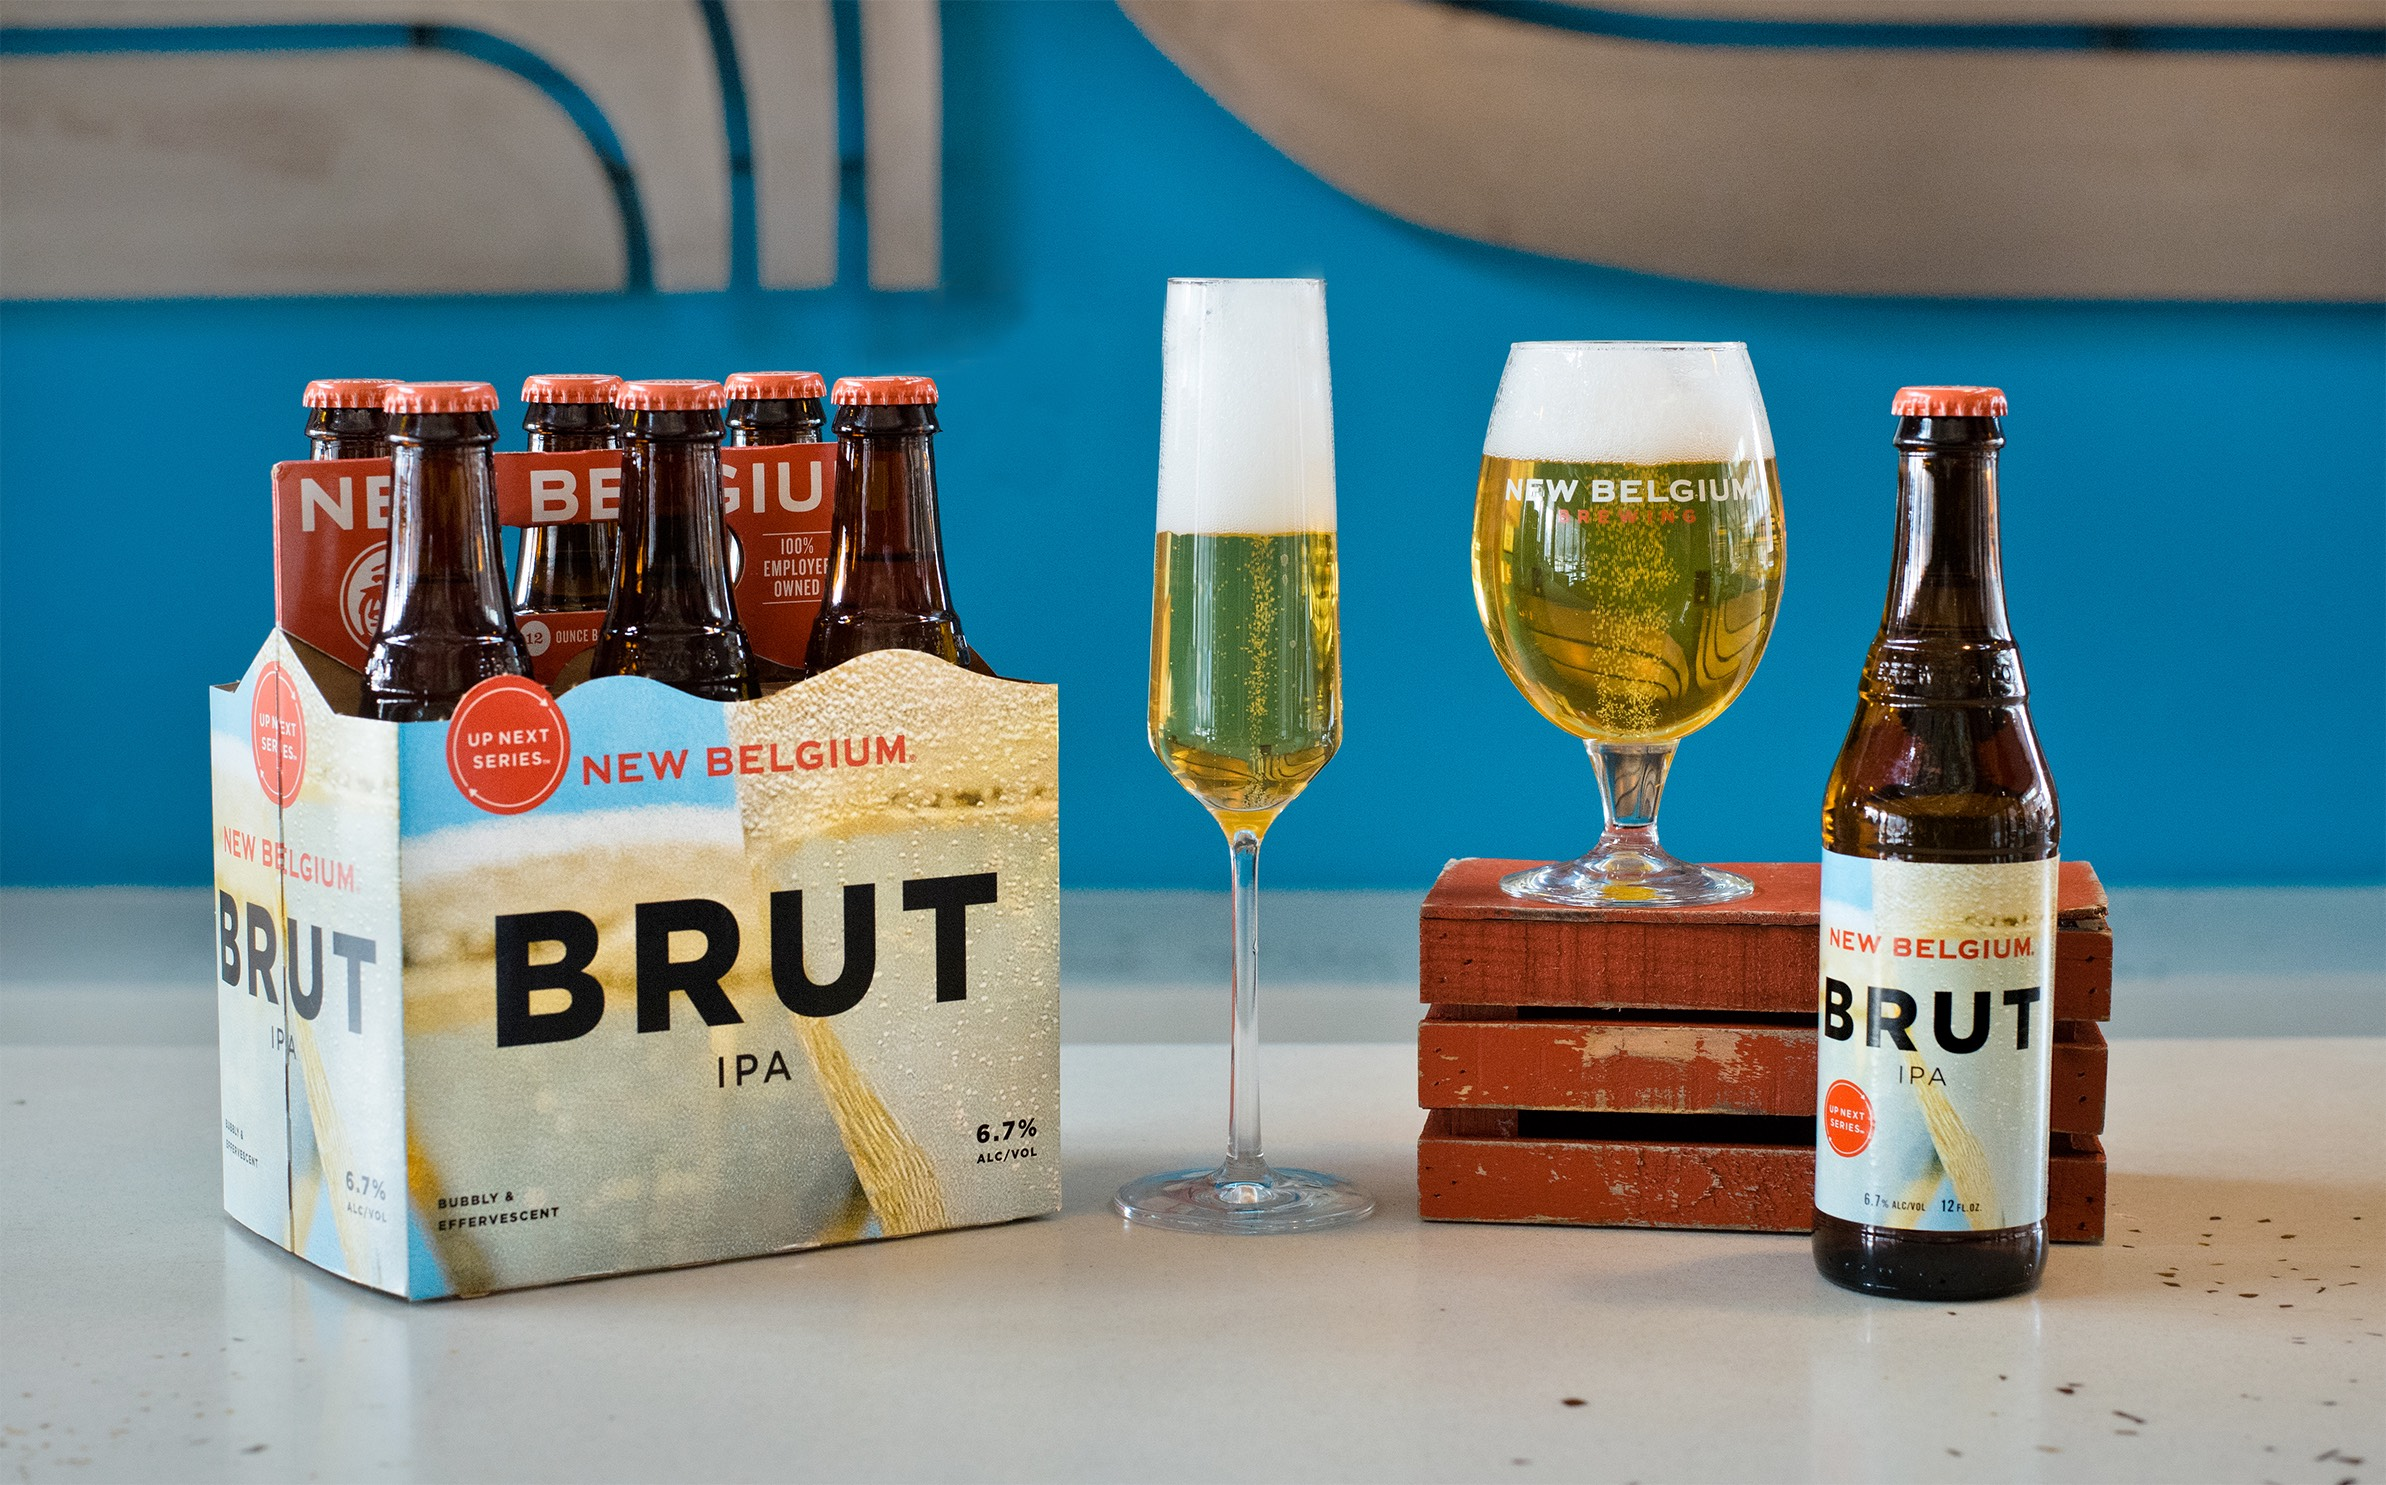 New Belgium Brewing Launches Up Next Rotator Series With Brut Ipa